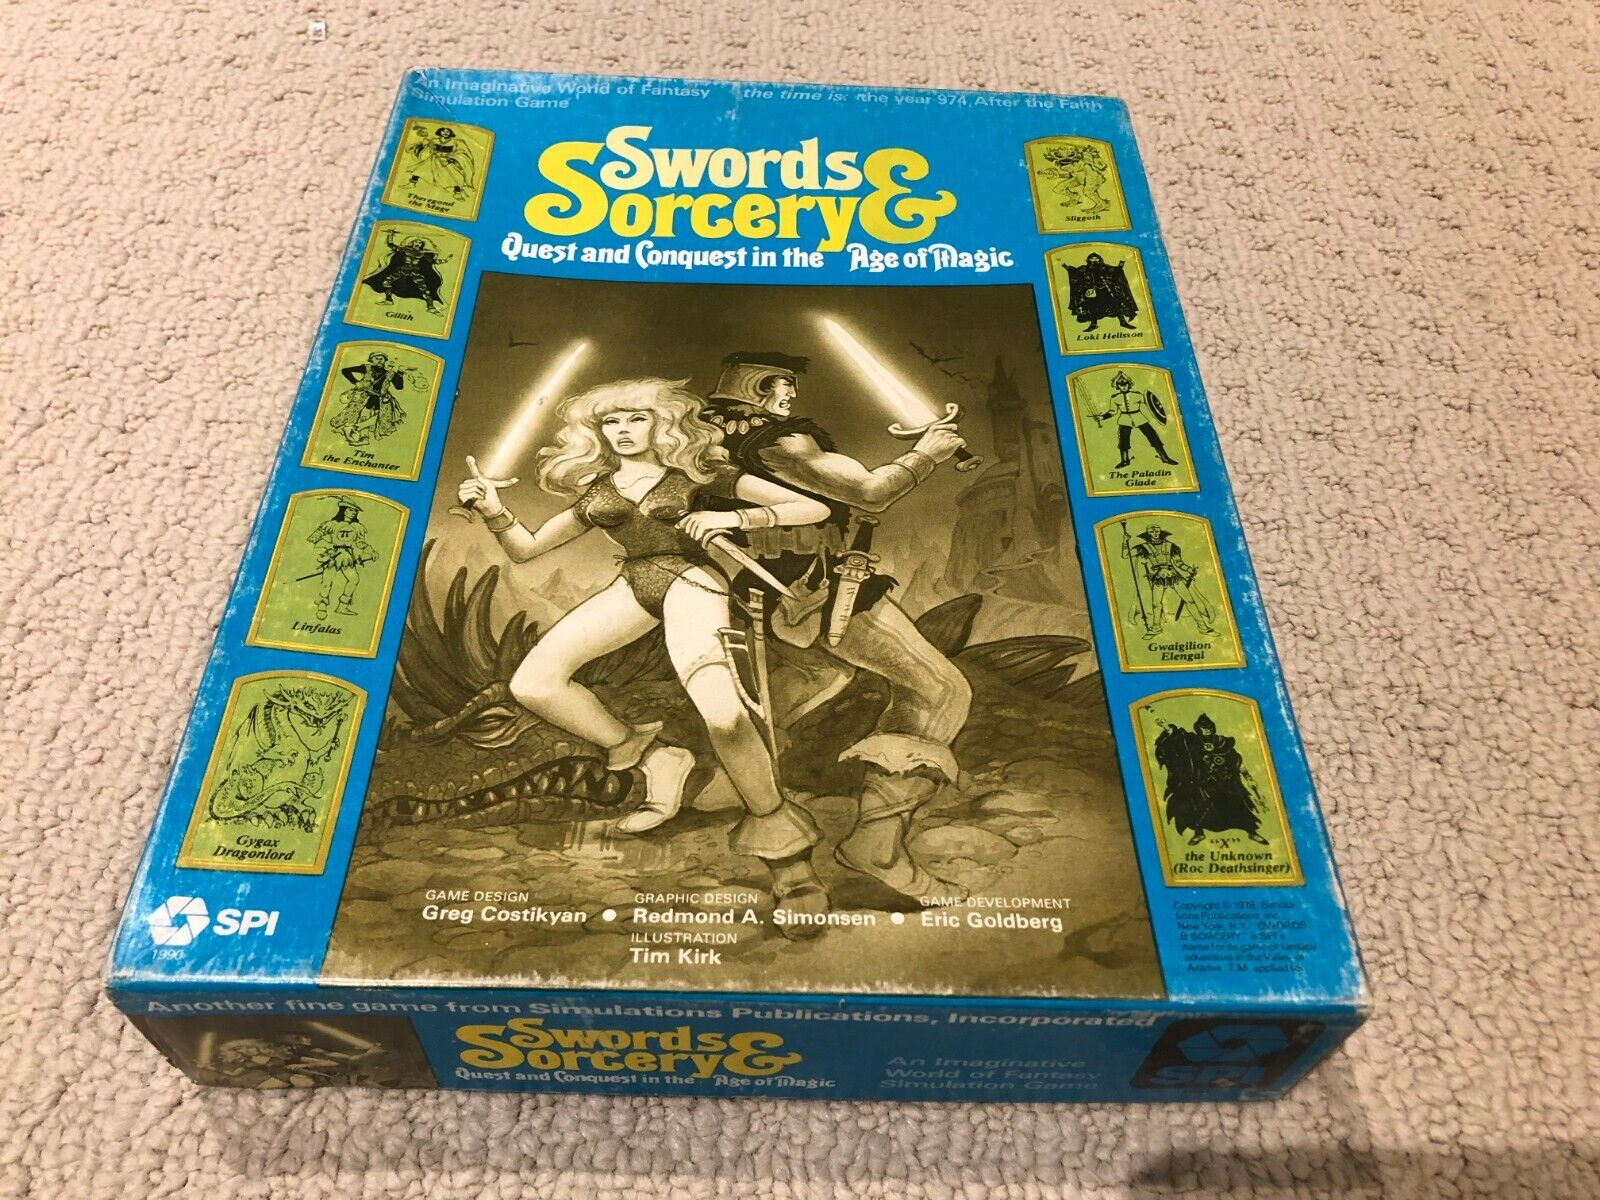 Swords & Sorcery SPI Games bluee Box Edition 1978 Unpunched